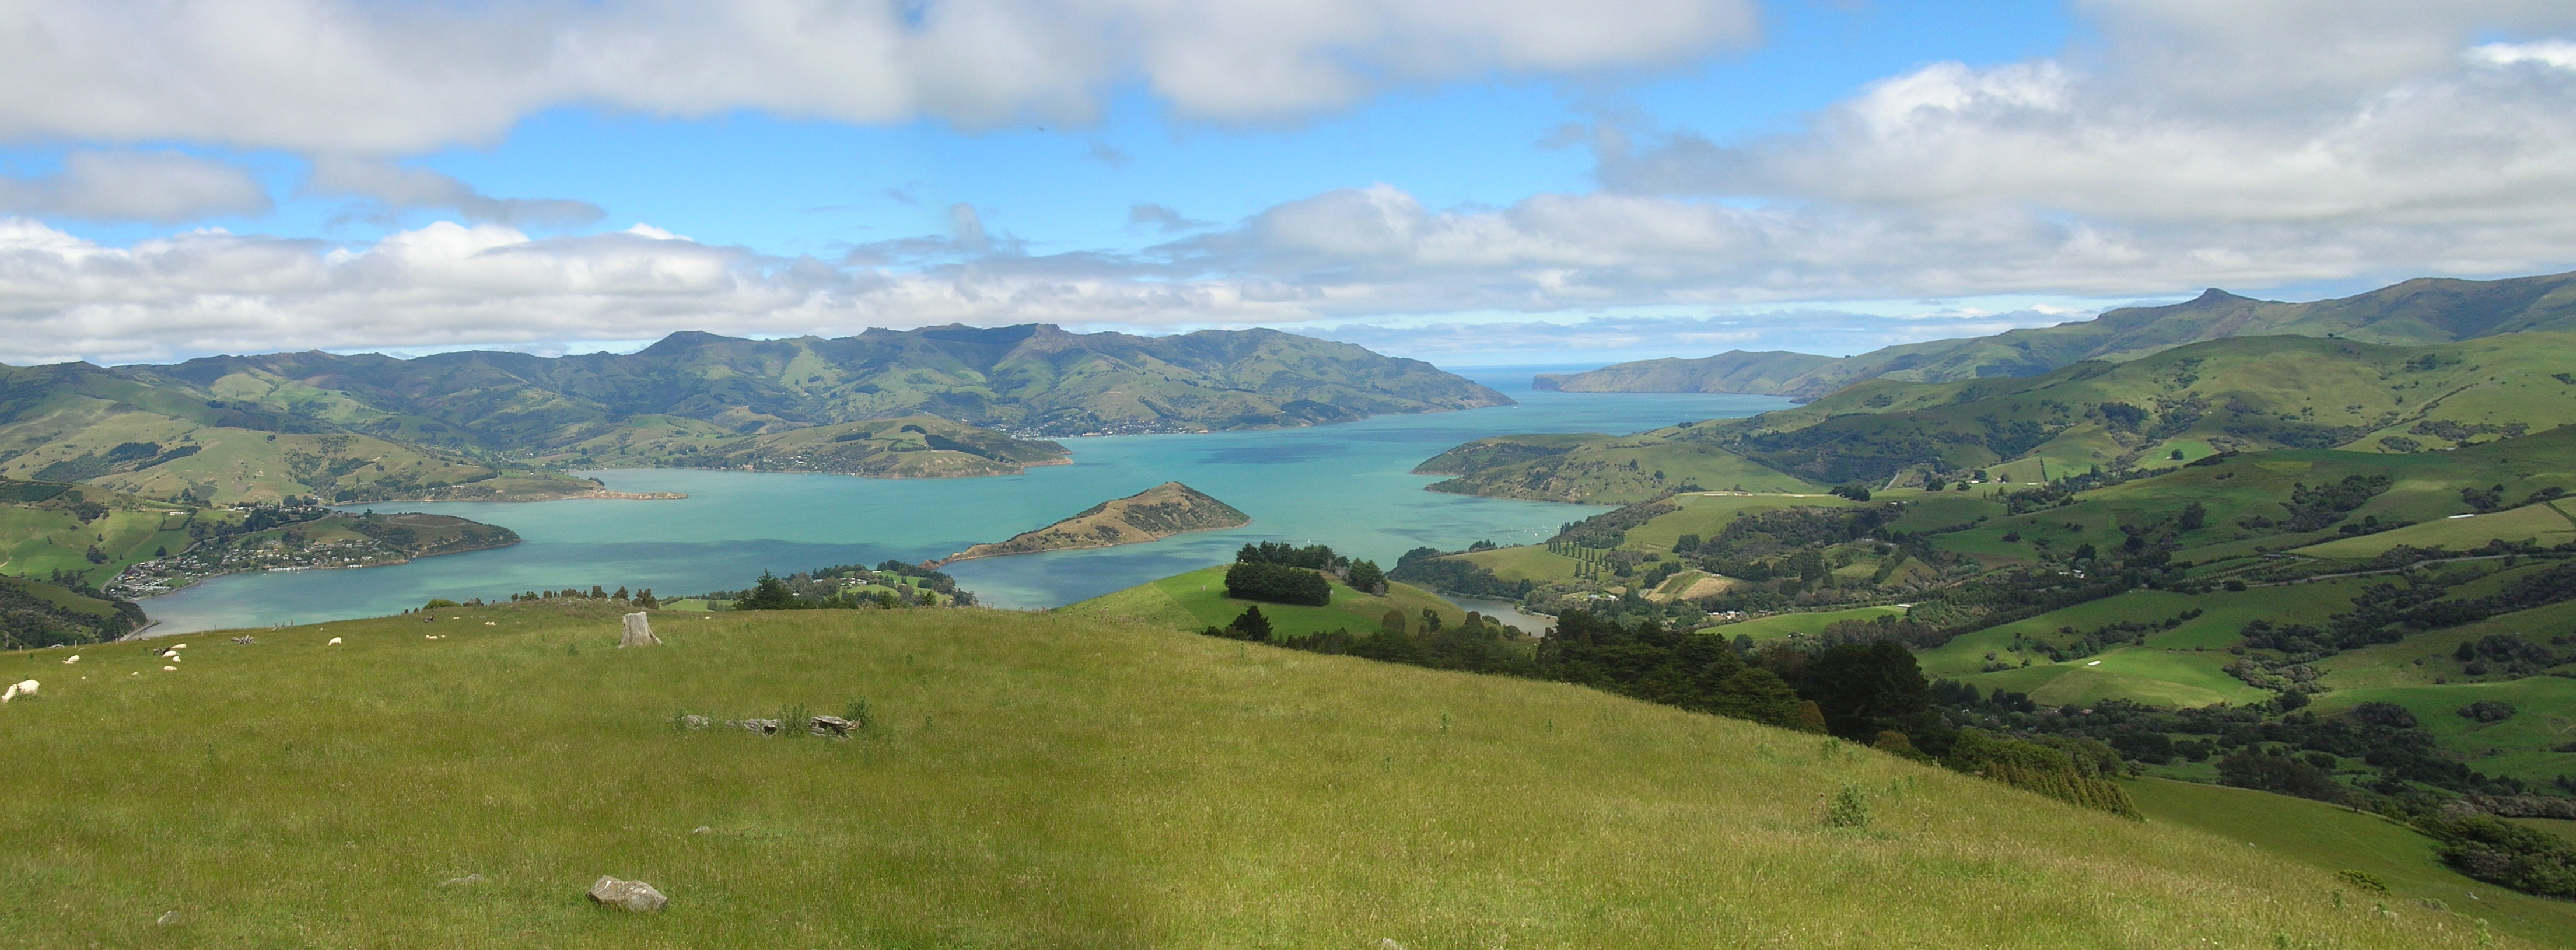 Akaroa New Zealand  city pictures gallery : akaroa harbor shipping center court house botanical gardens akaroa ...